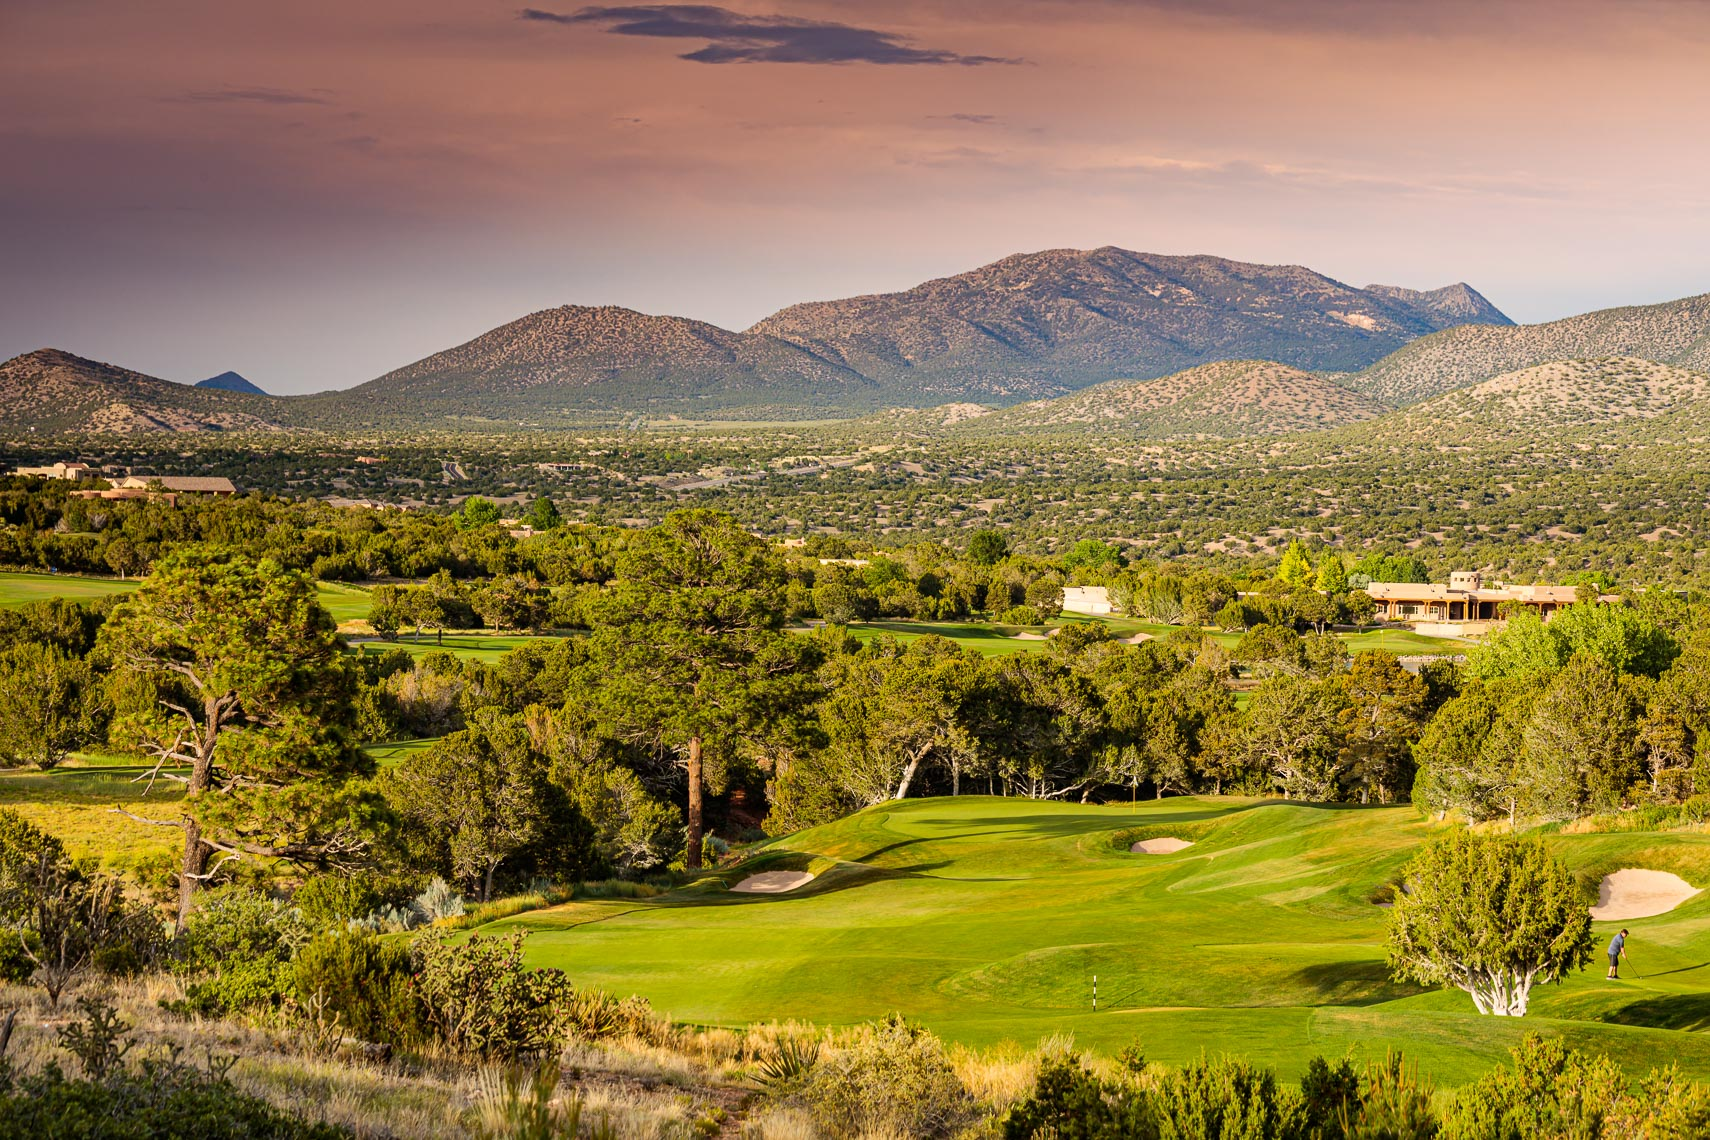 New Mexico Golf Course Paako Ridge | Michael DeYoung